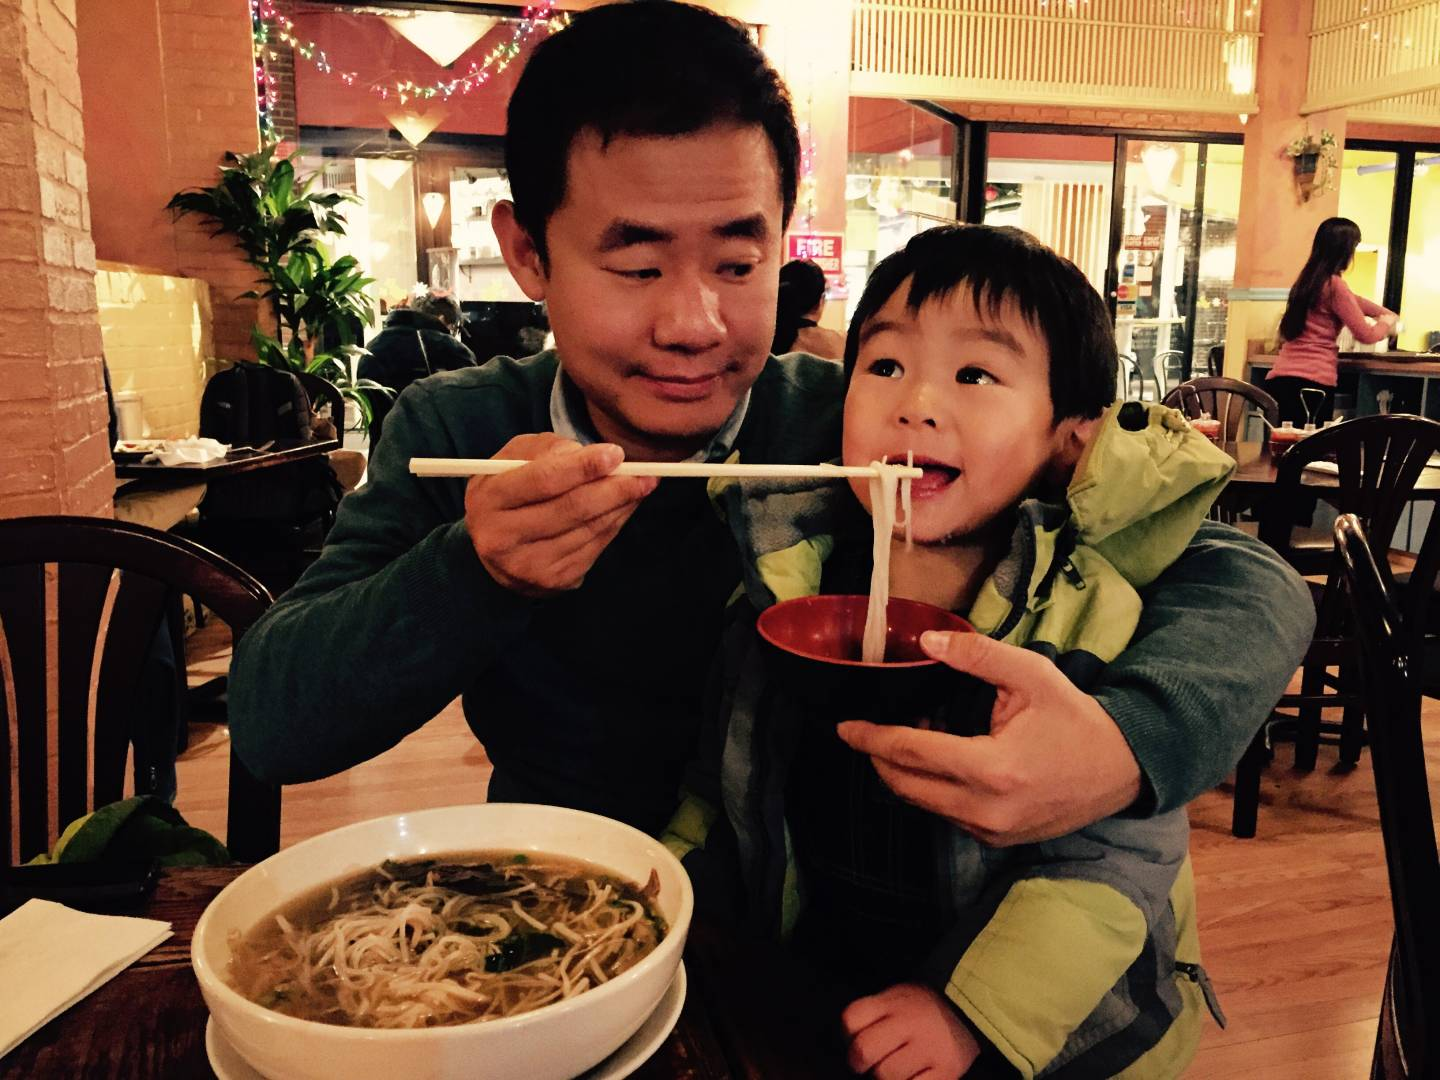 Xiyue Wang feeding his son noodles